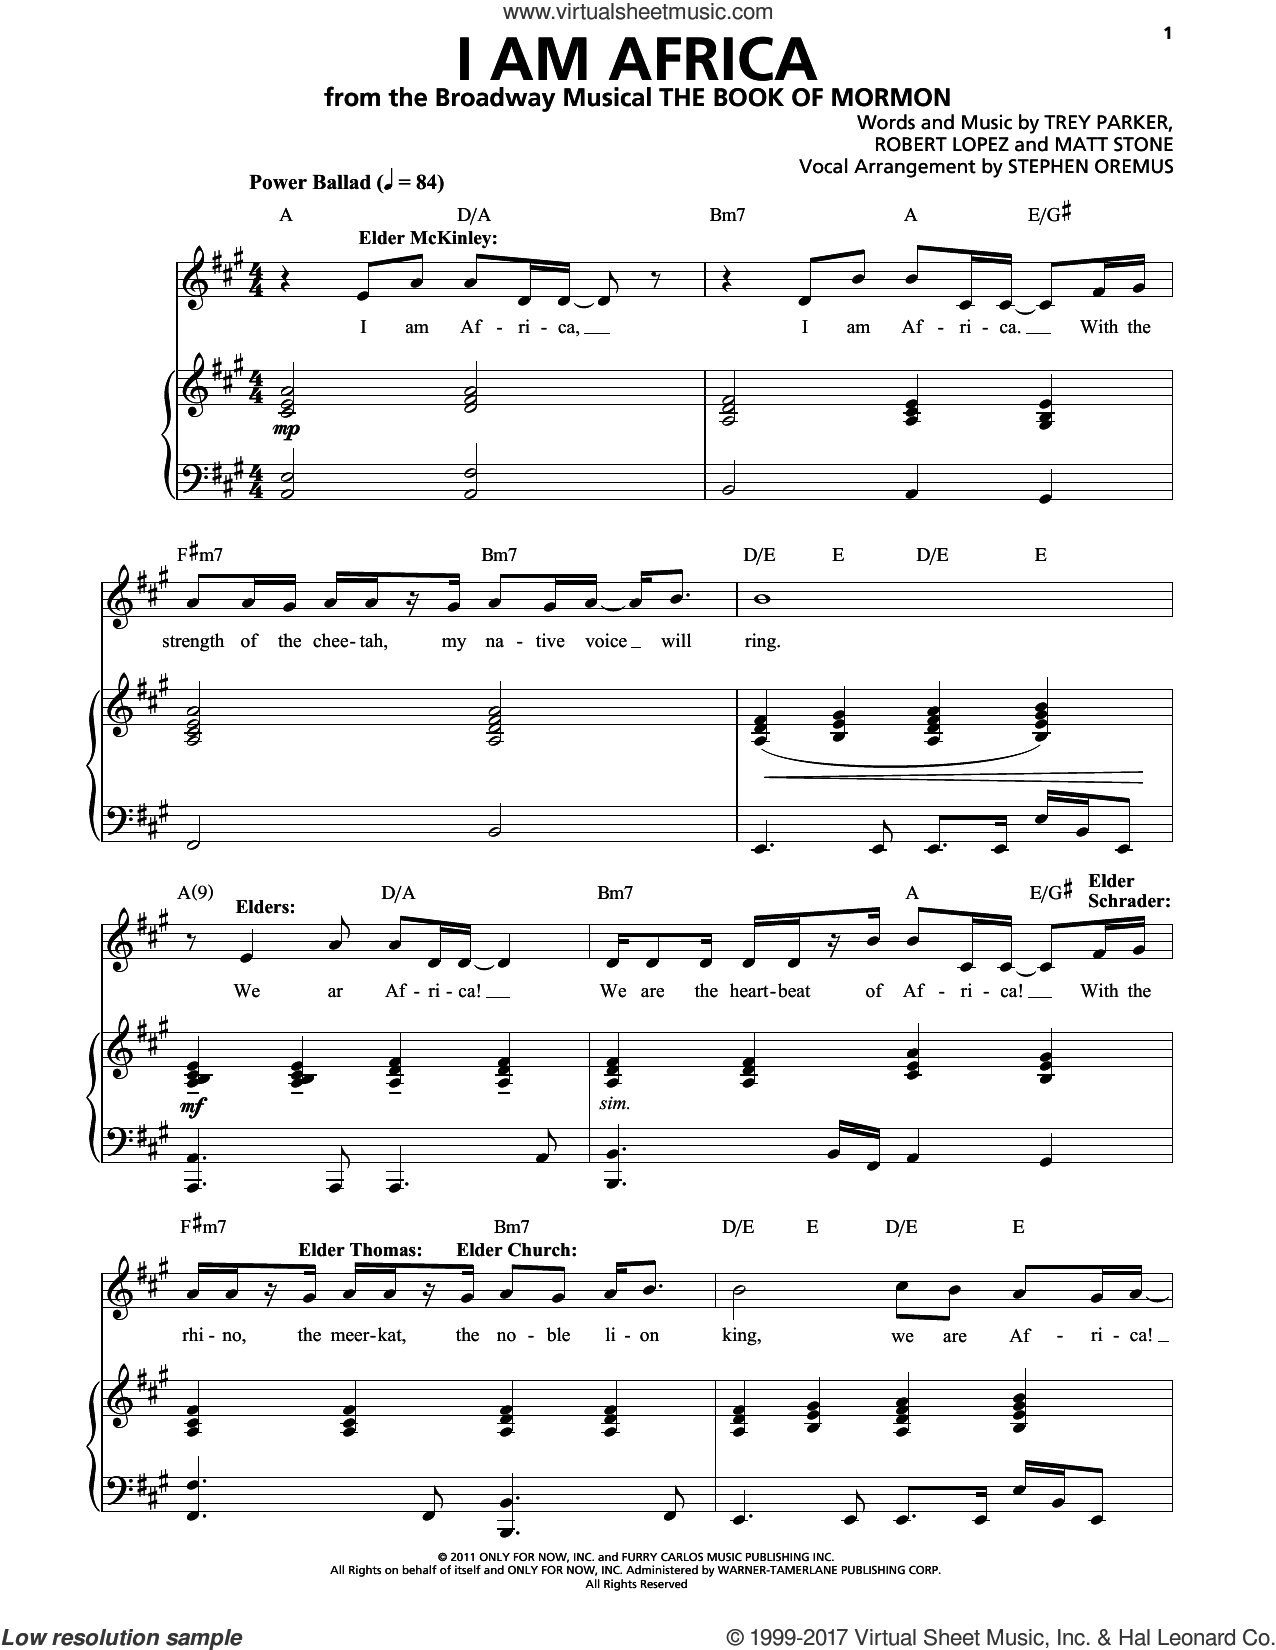 Stone - I Am Africa sheet music for voice and piano [PDF]